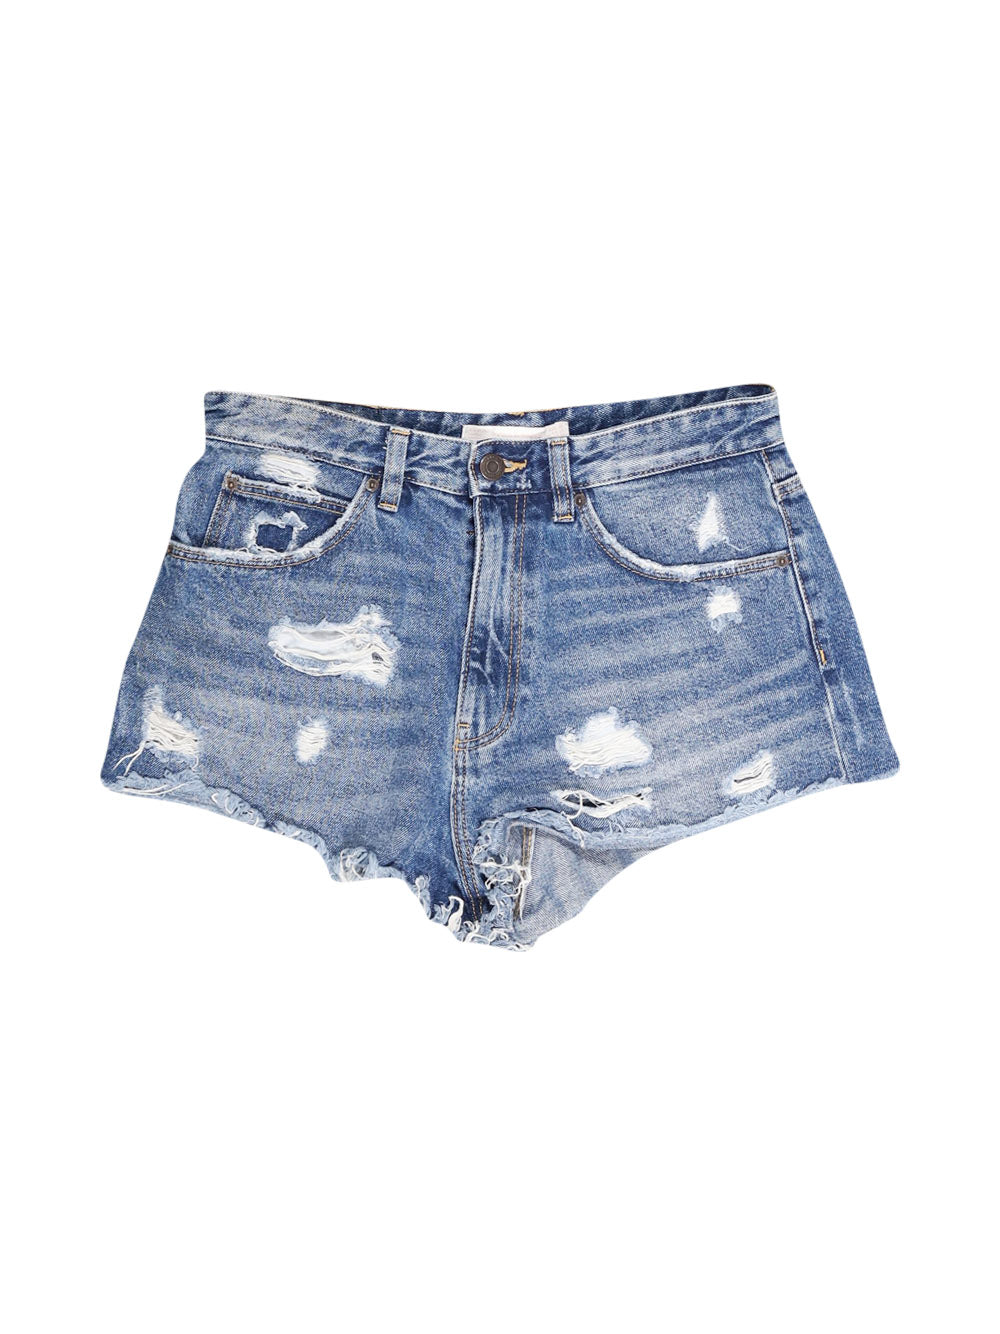 Front photo of Preloved Zara Blue Woman's shorts - size 10/M